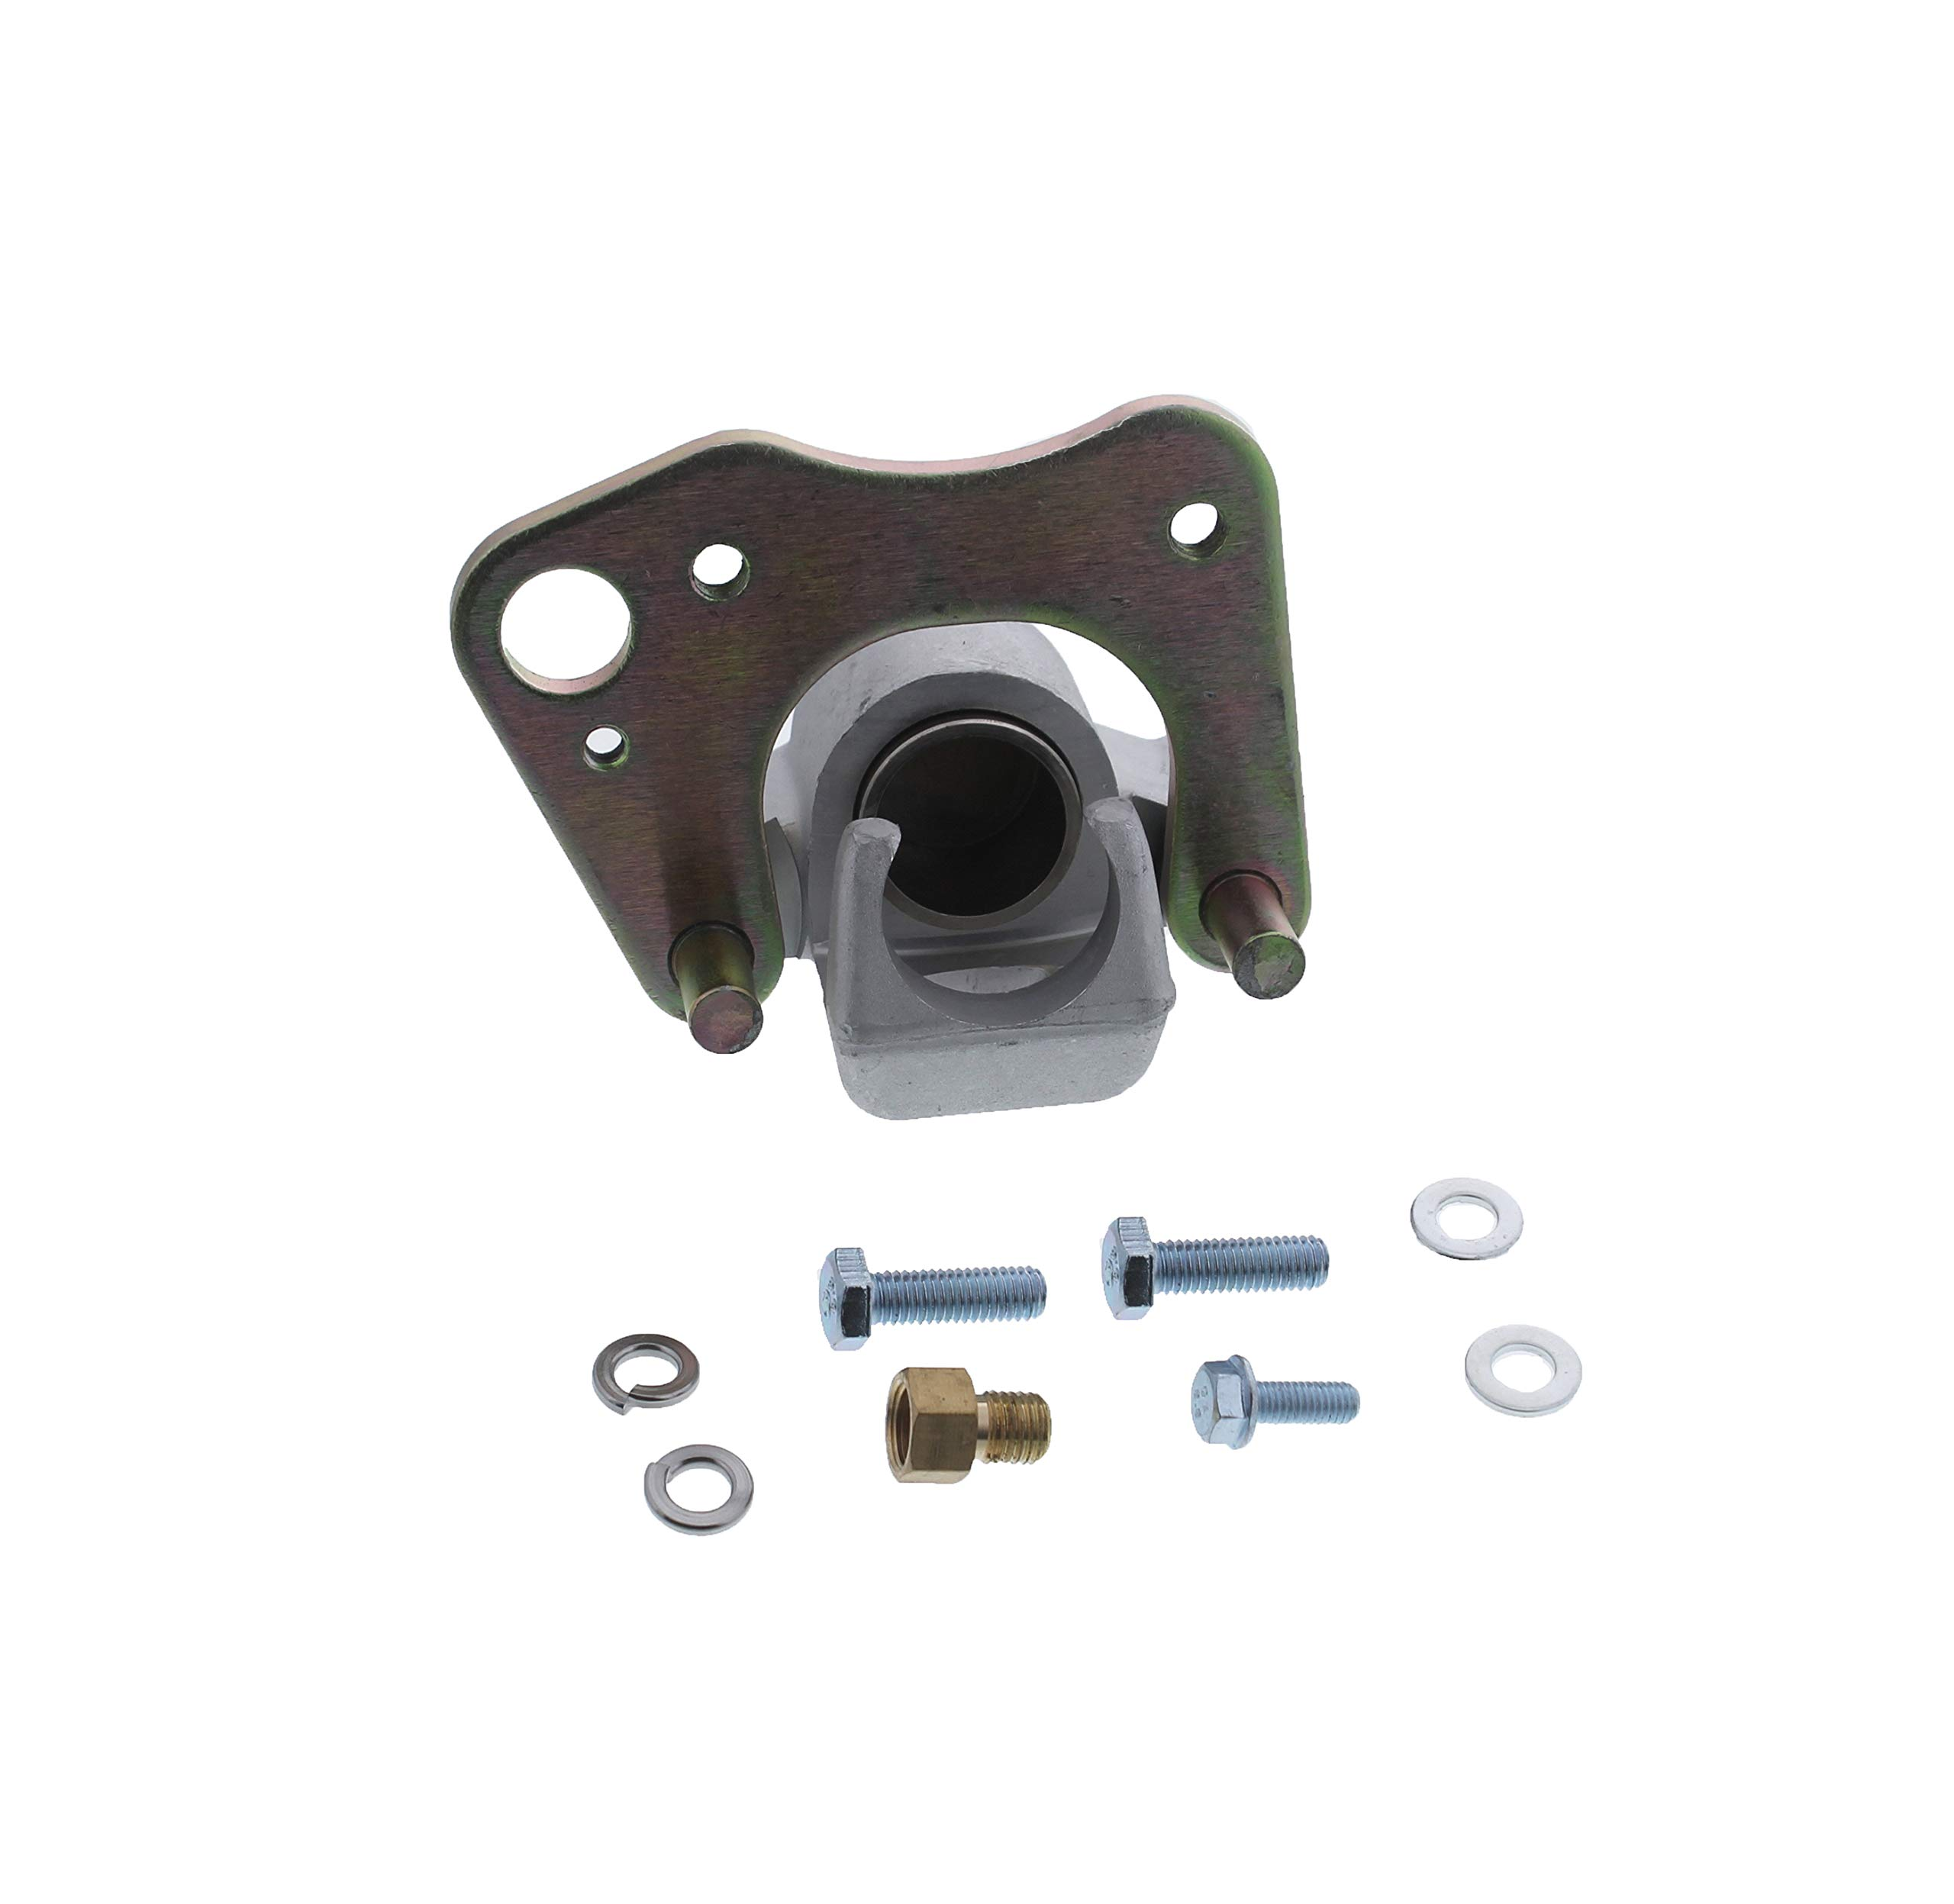 Brake Caliper for Polaris 400 L Sport 1996-1999 Front Left by Race-Driven